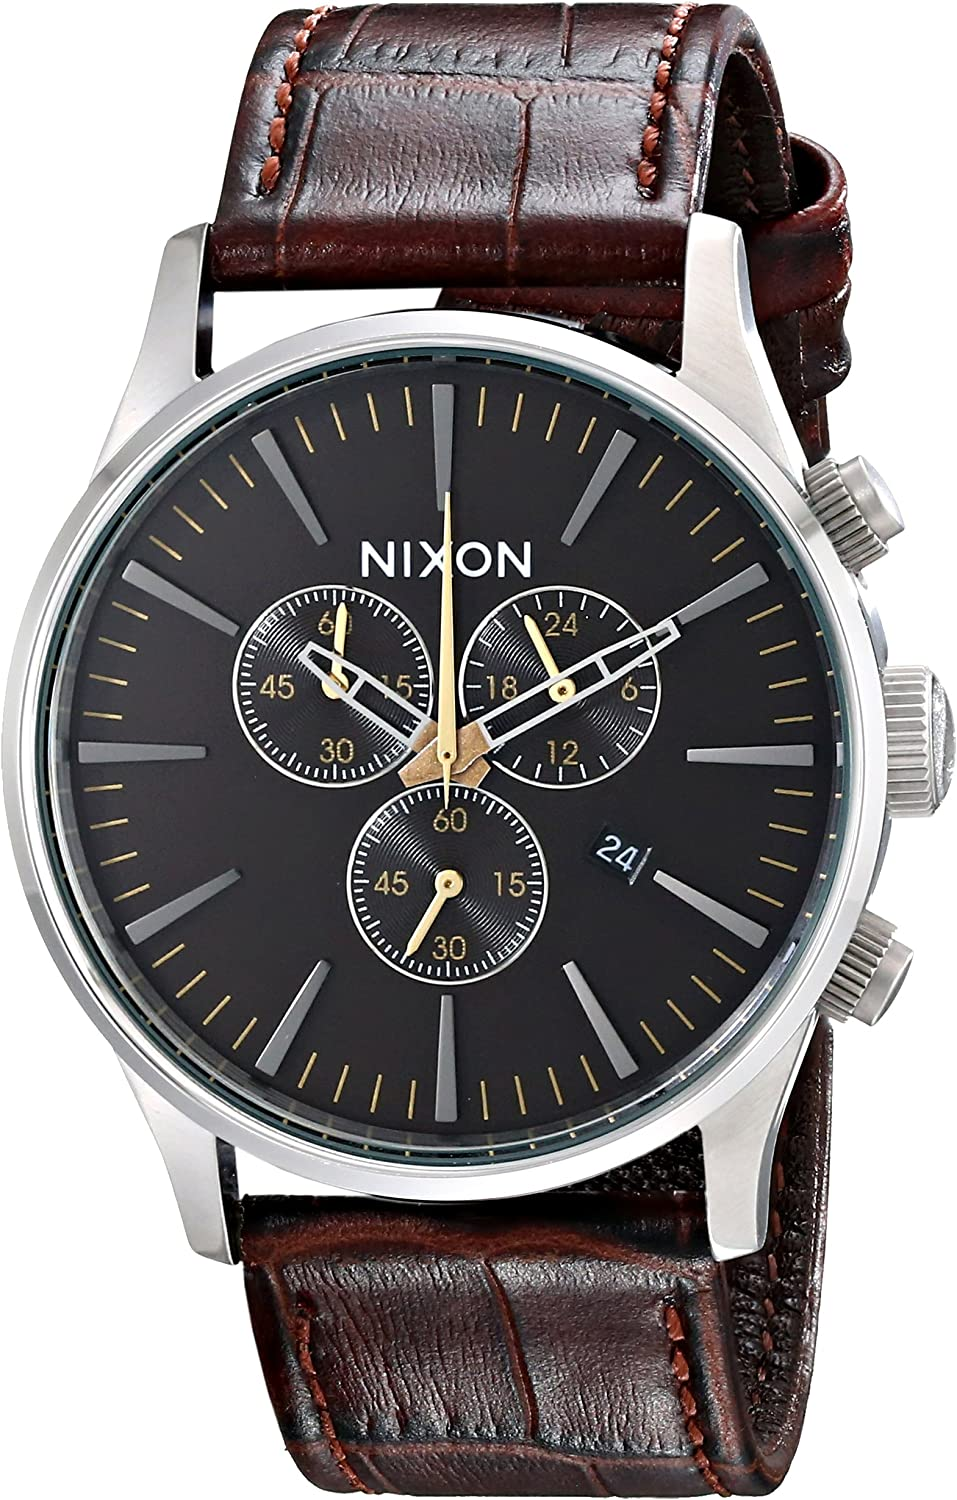 Nixon Men s Sentry Stainless Steel Chronograph Watch with Leather Band